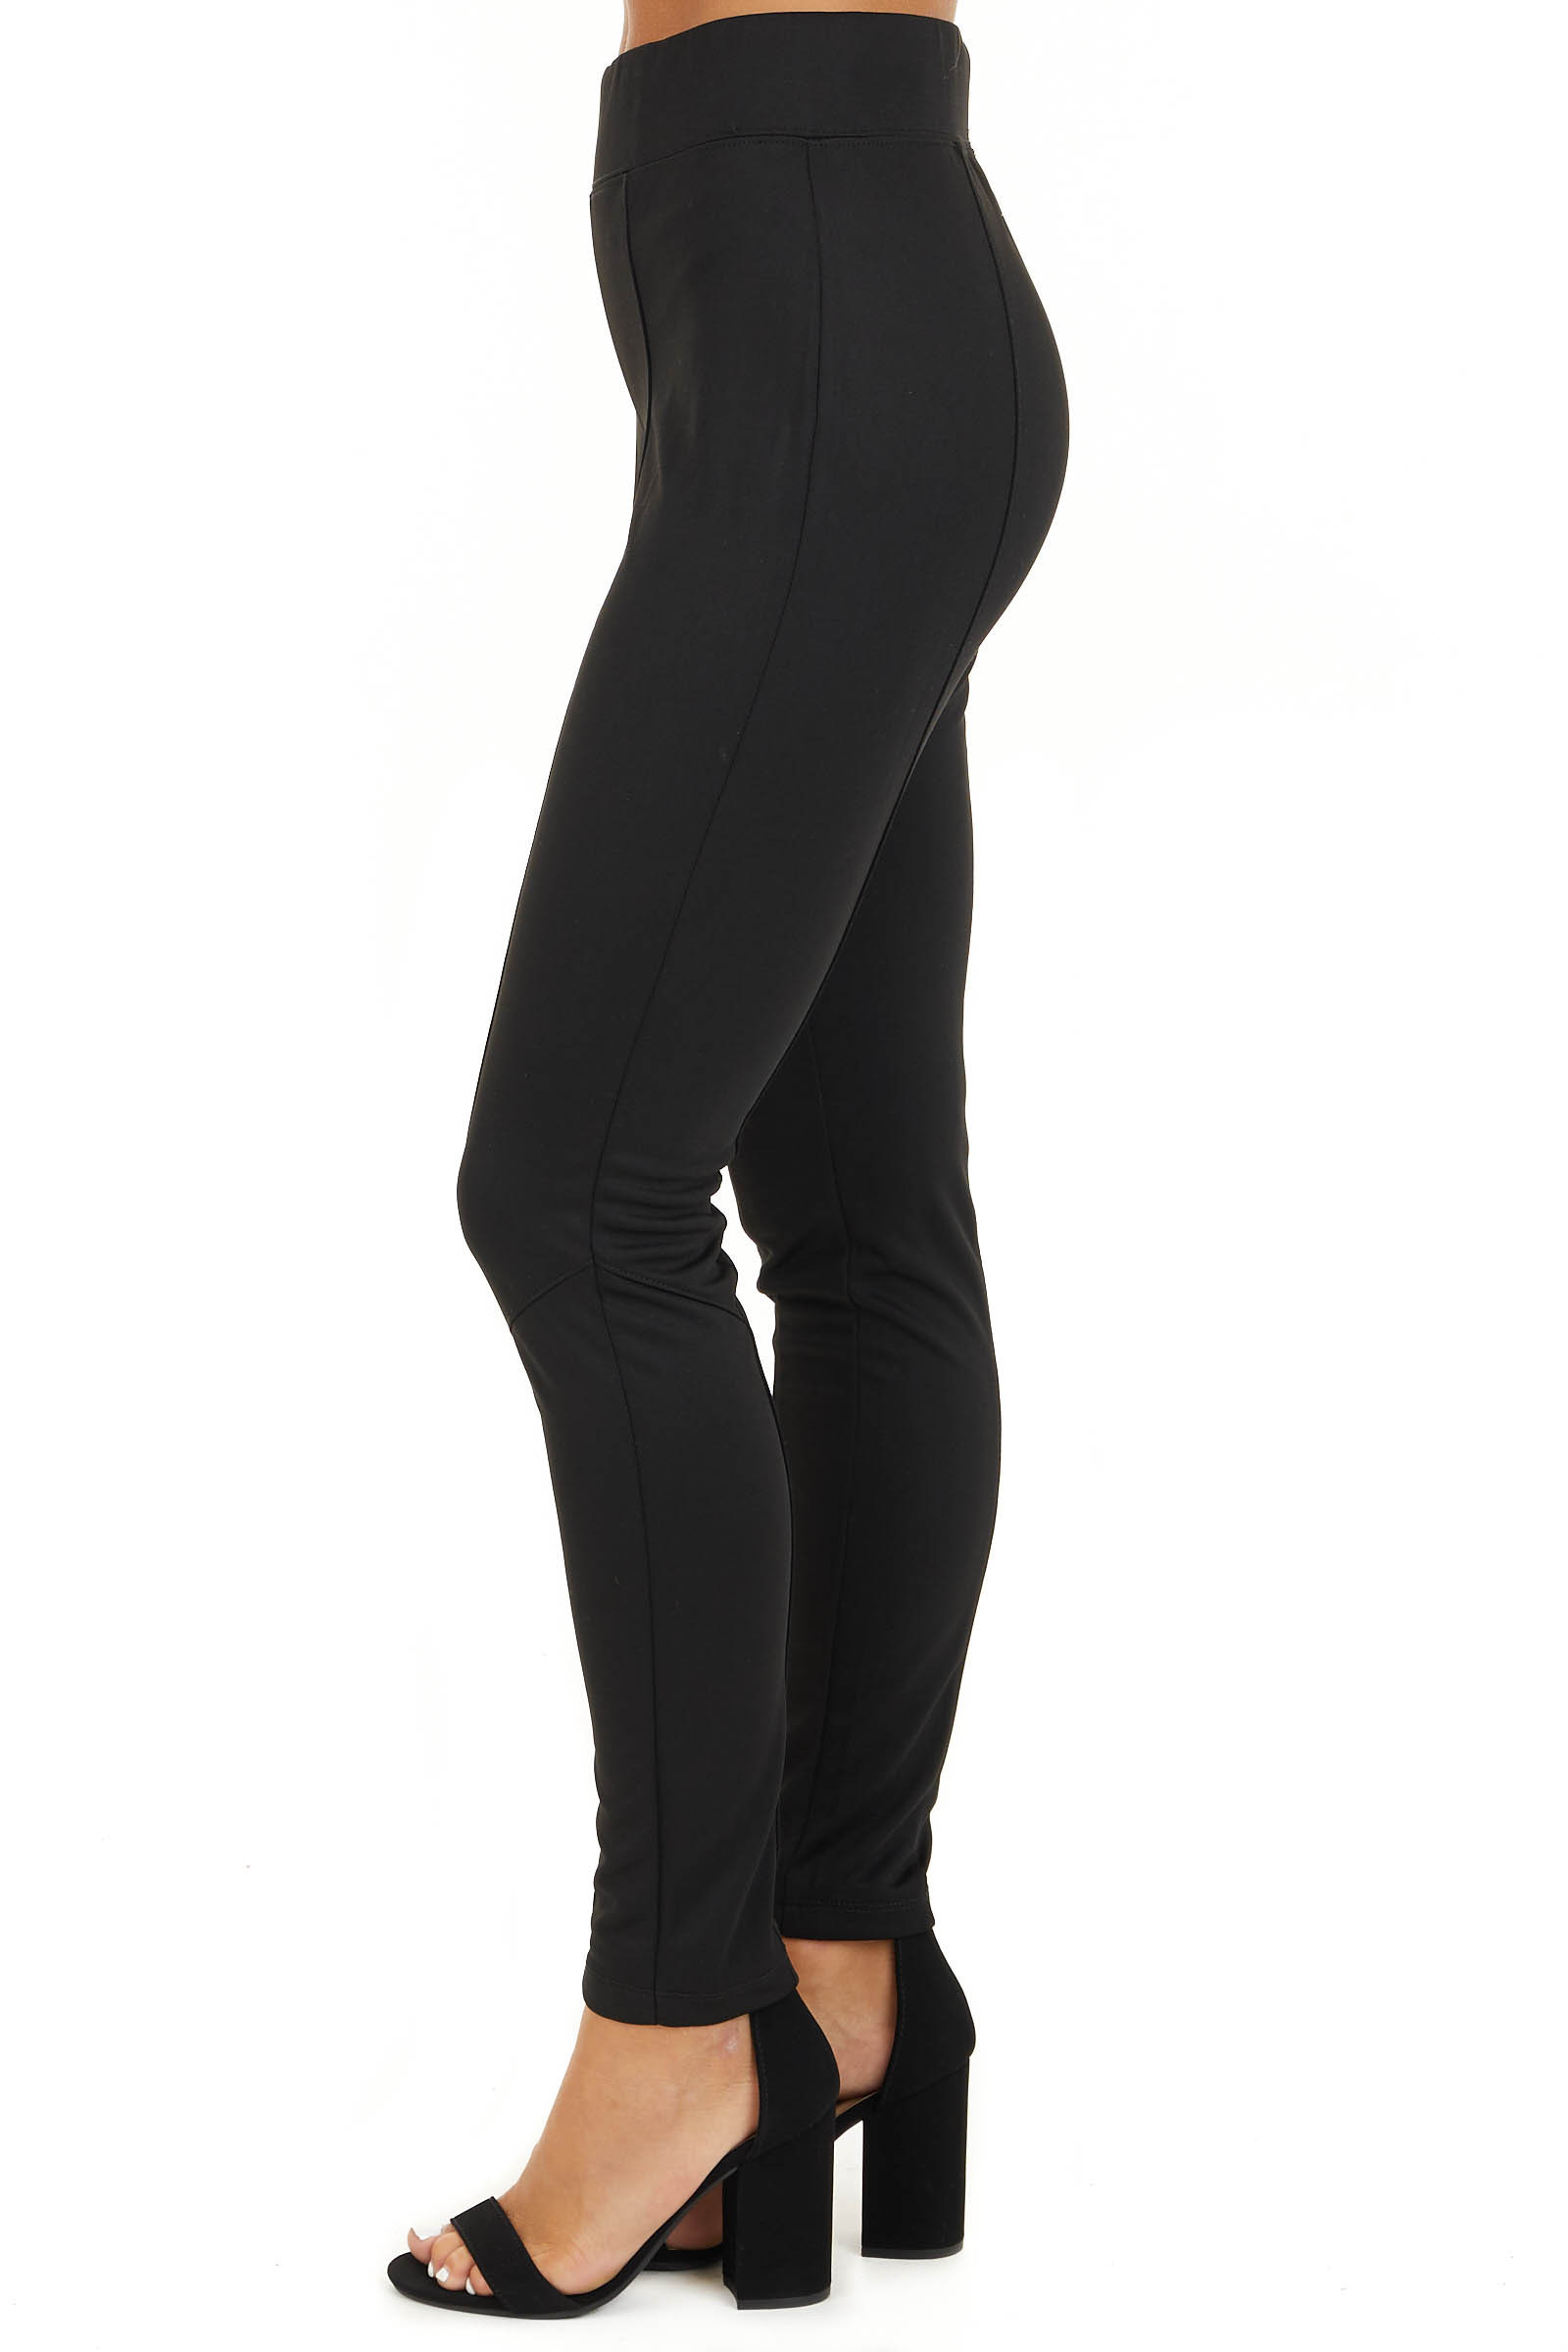 Black High Waisted Leggings with Elastic Waistband side view